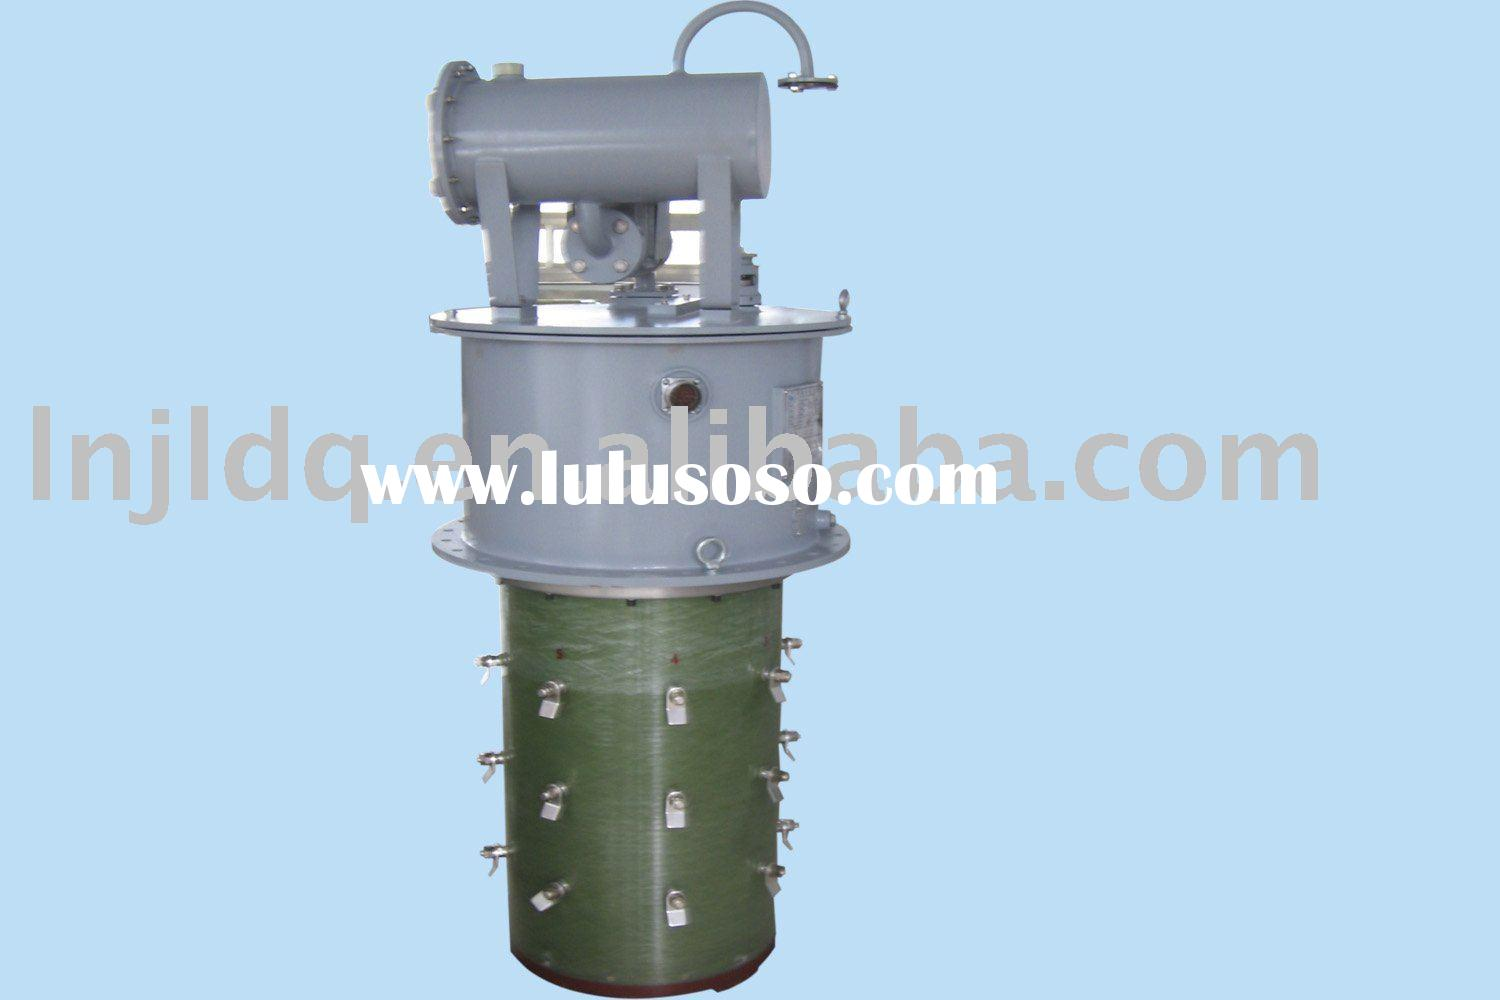 electronics of on load tap changer For example, in power distribution networks, a large step-down transformer may have an off-load tap changer on the primary winding and an on-load automatic tap changer on the secondary winding or windings.